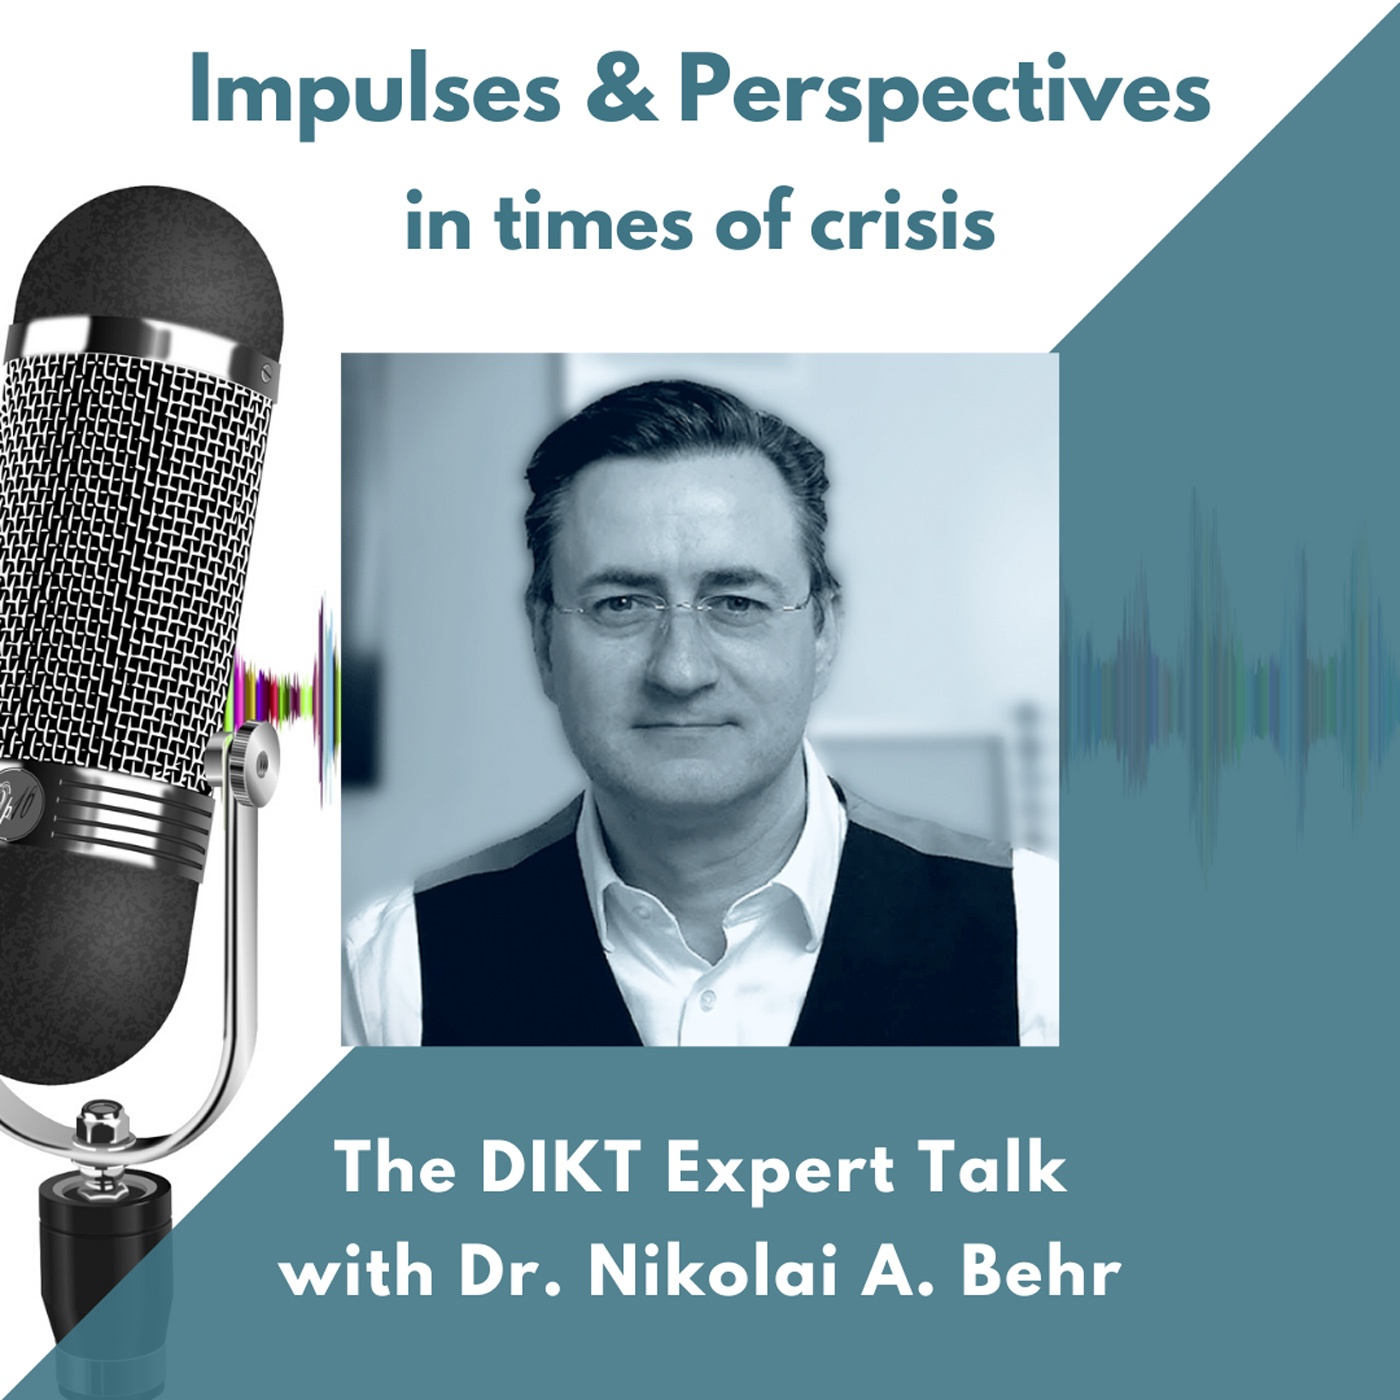 Impulses & Perspectives - The DIKT Expert Talk in Times of Crisis